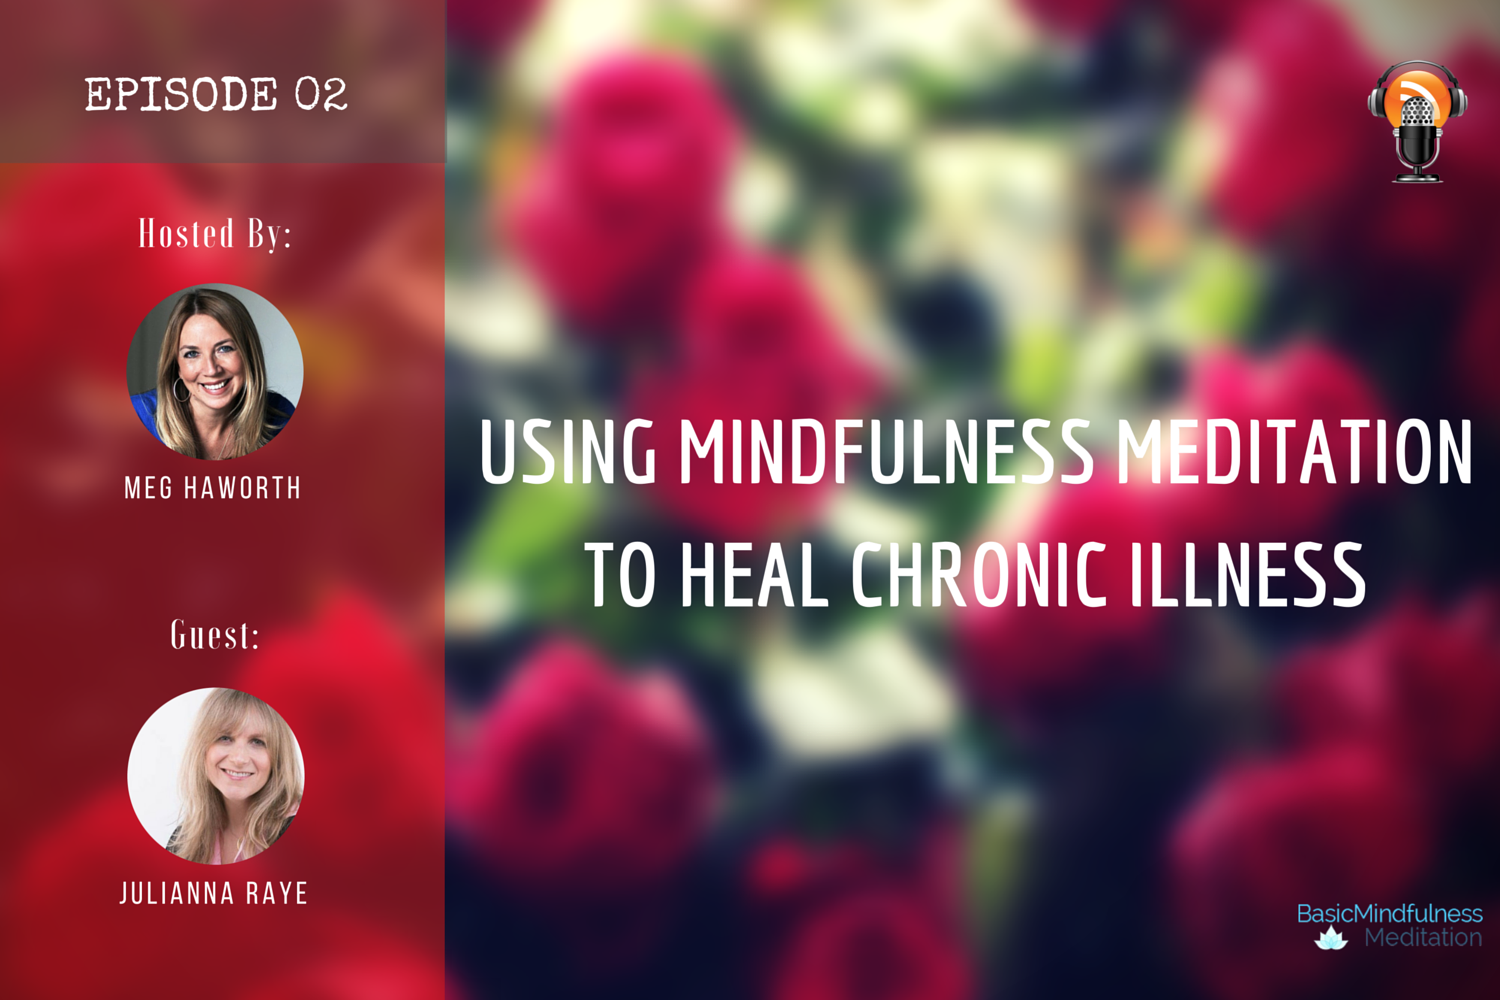 USING MINDFULNESS MEDITATION TO HEAL CHRONIC ILLNESS